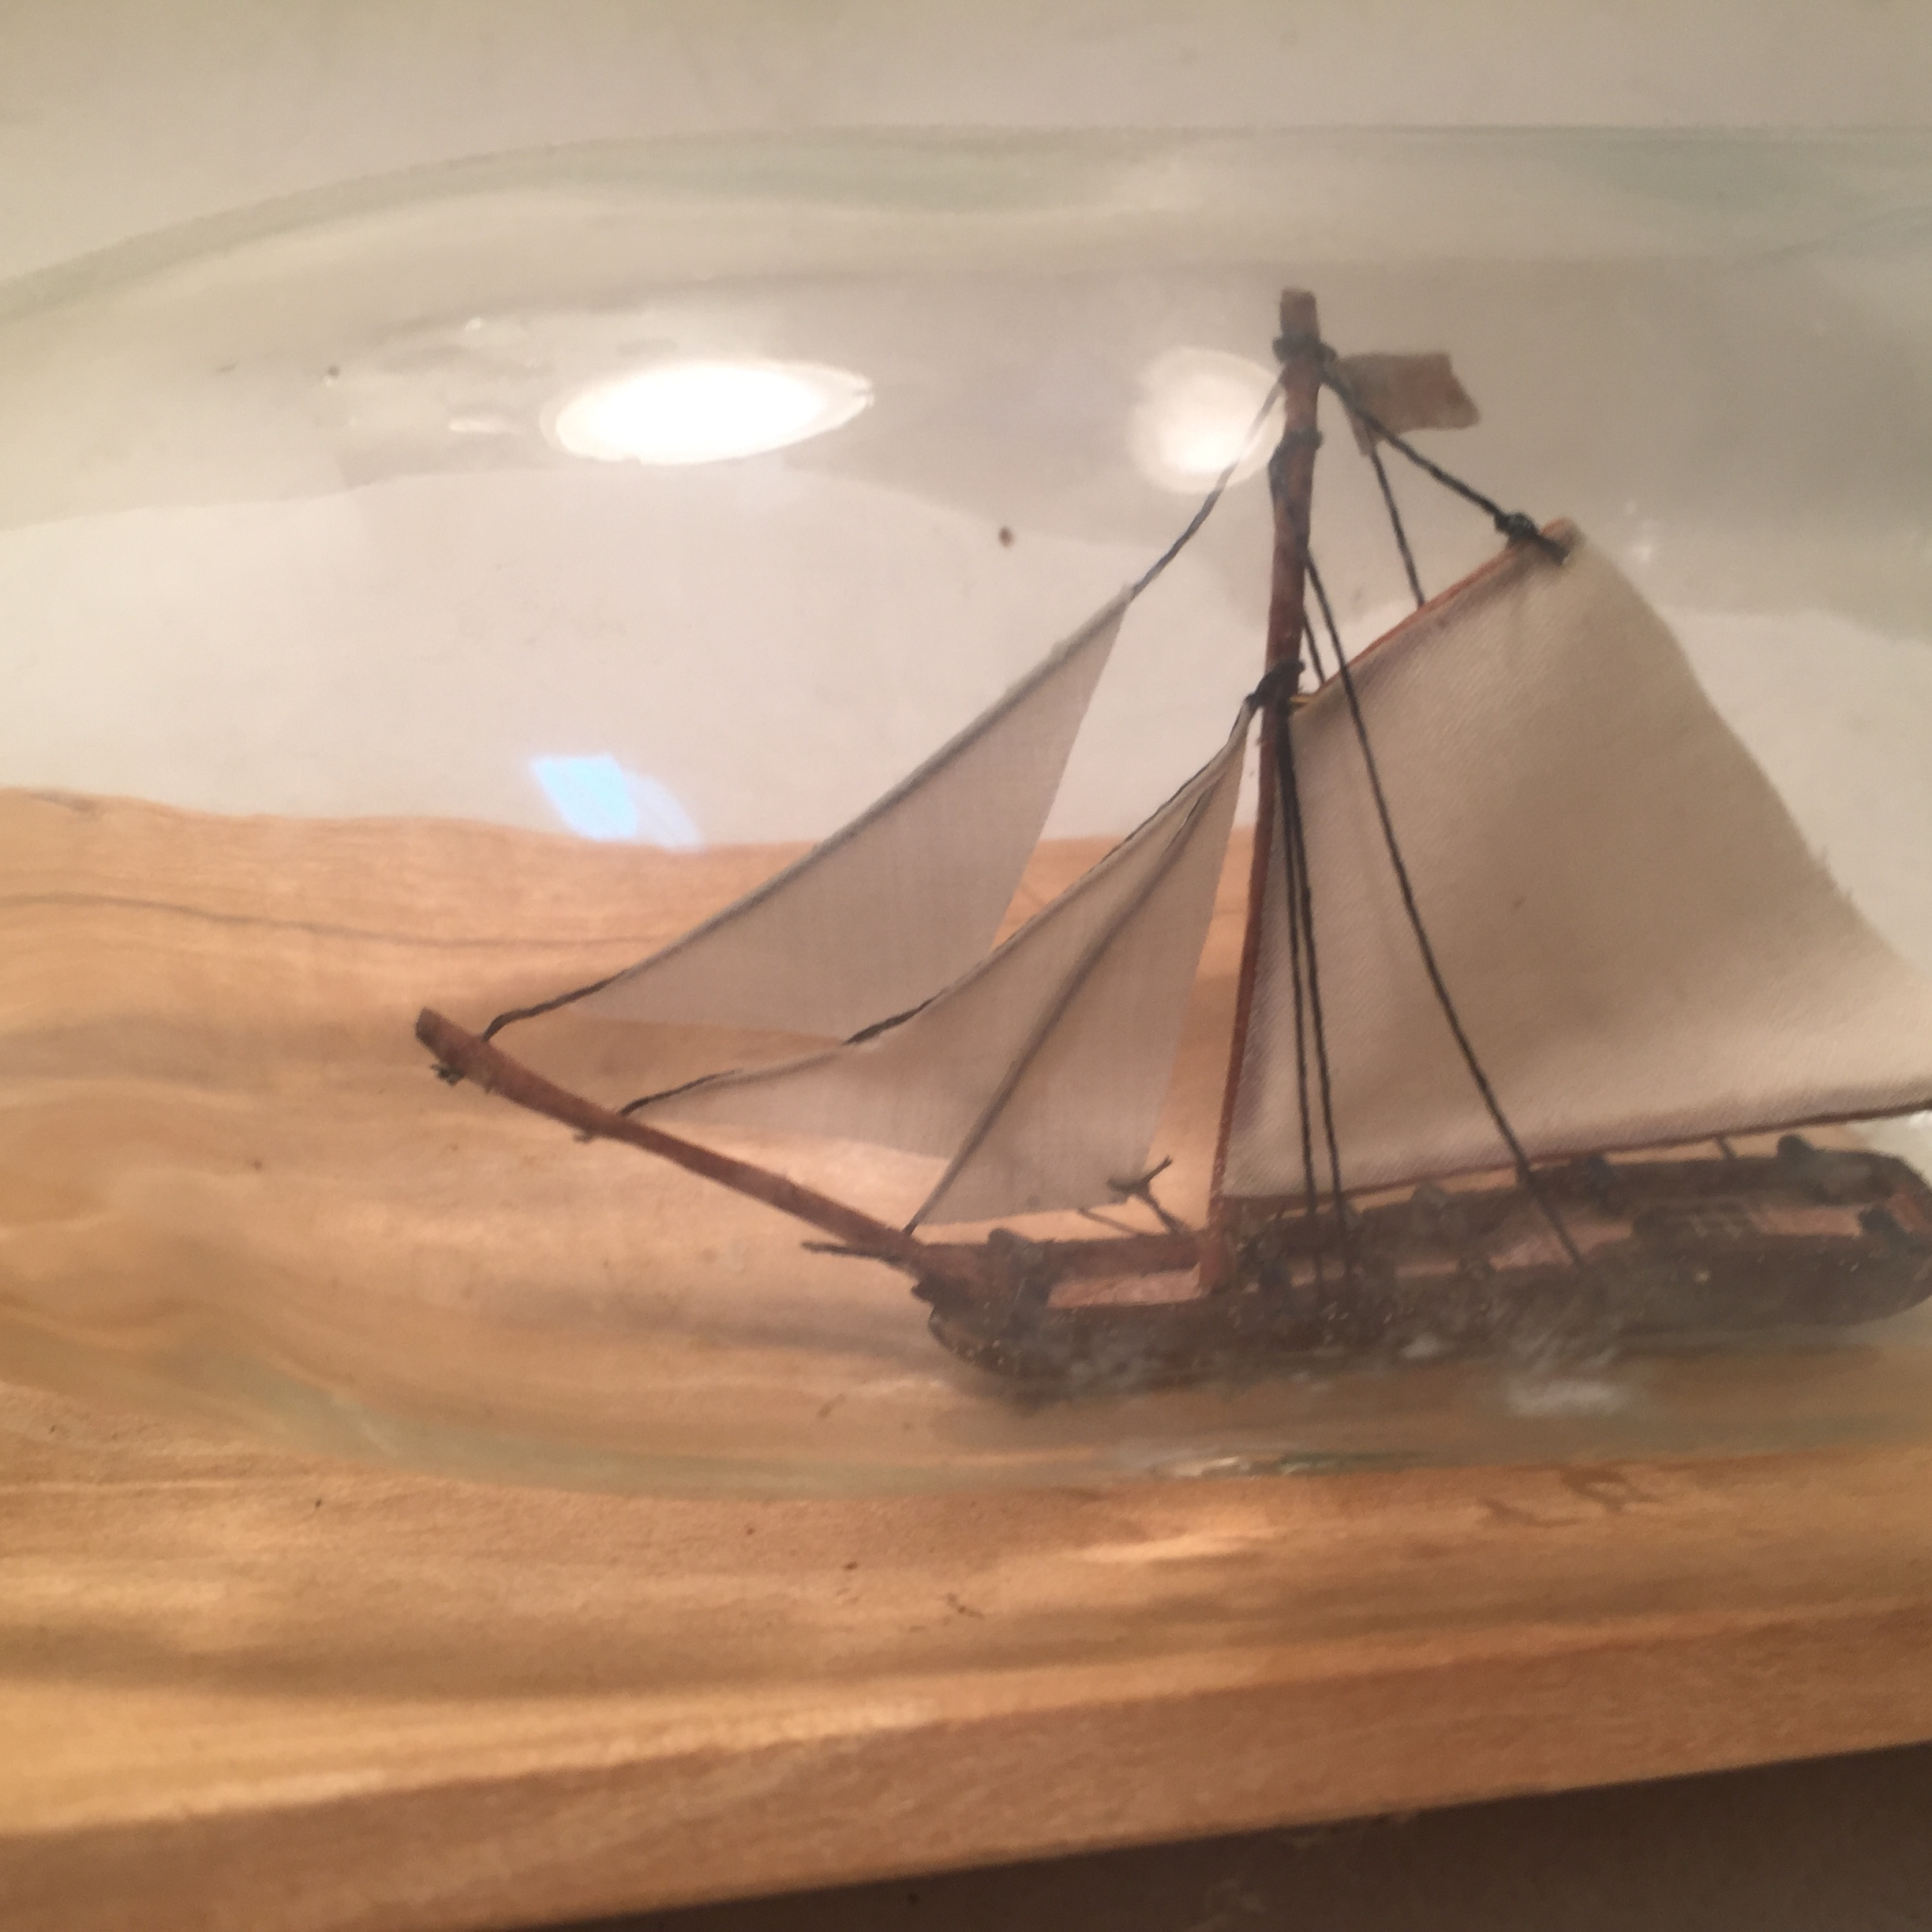 Gaff rigged ship in a bottle